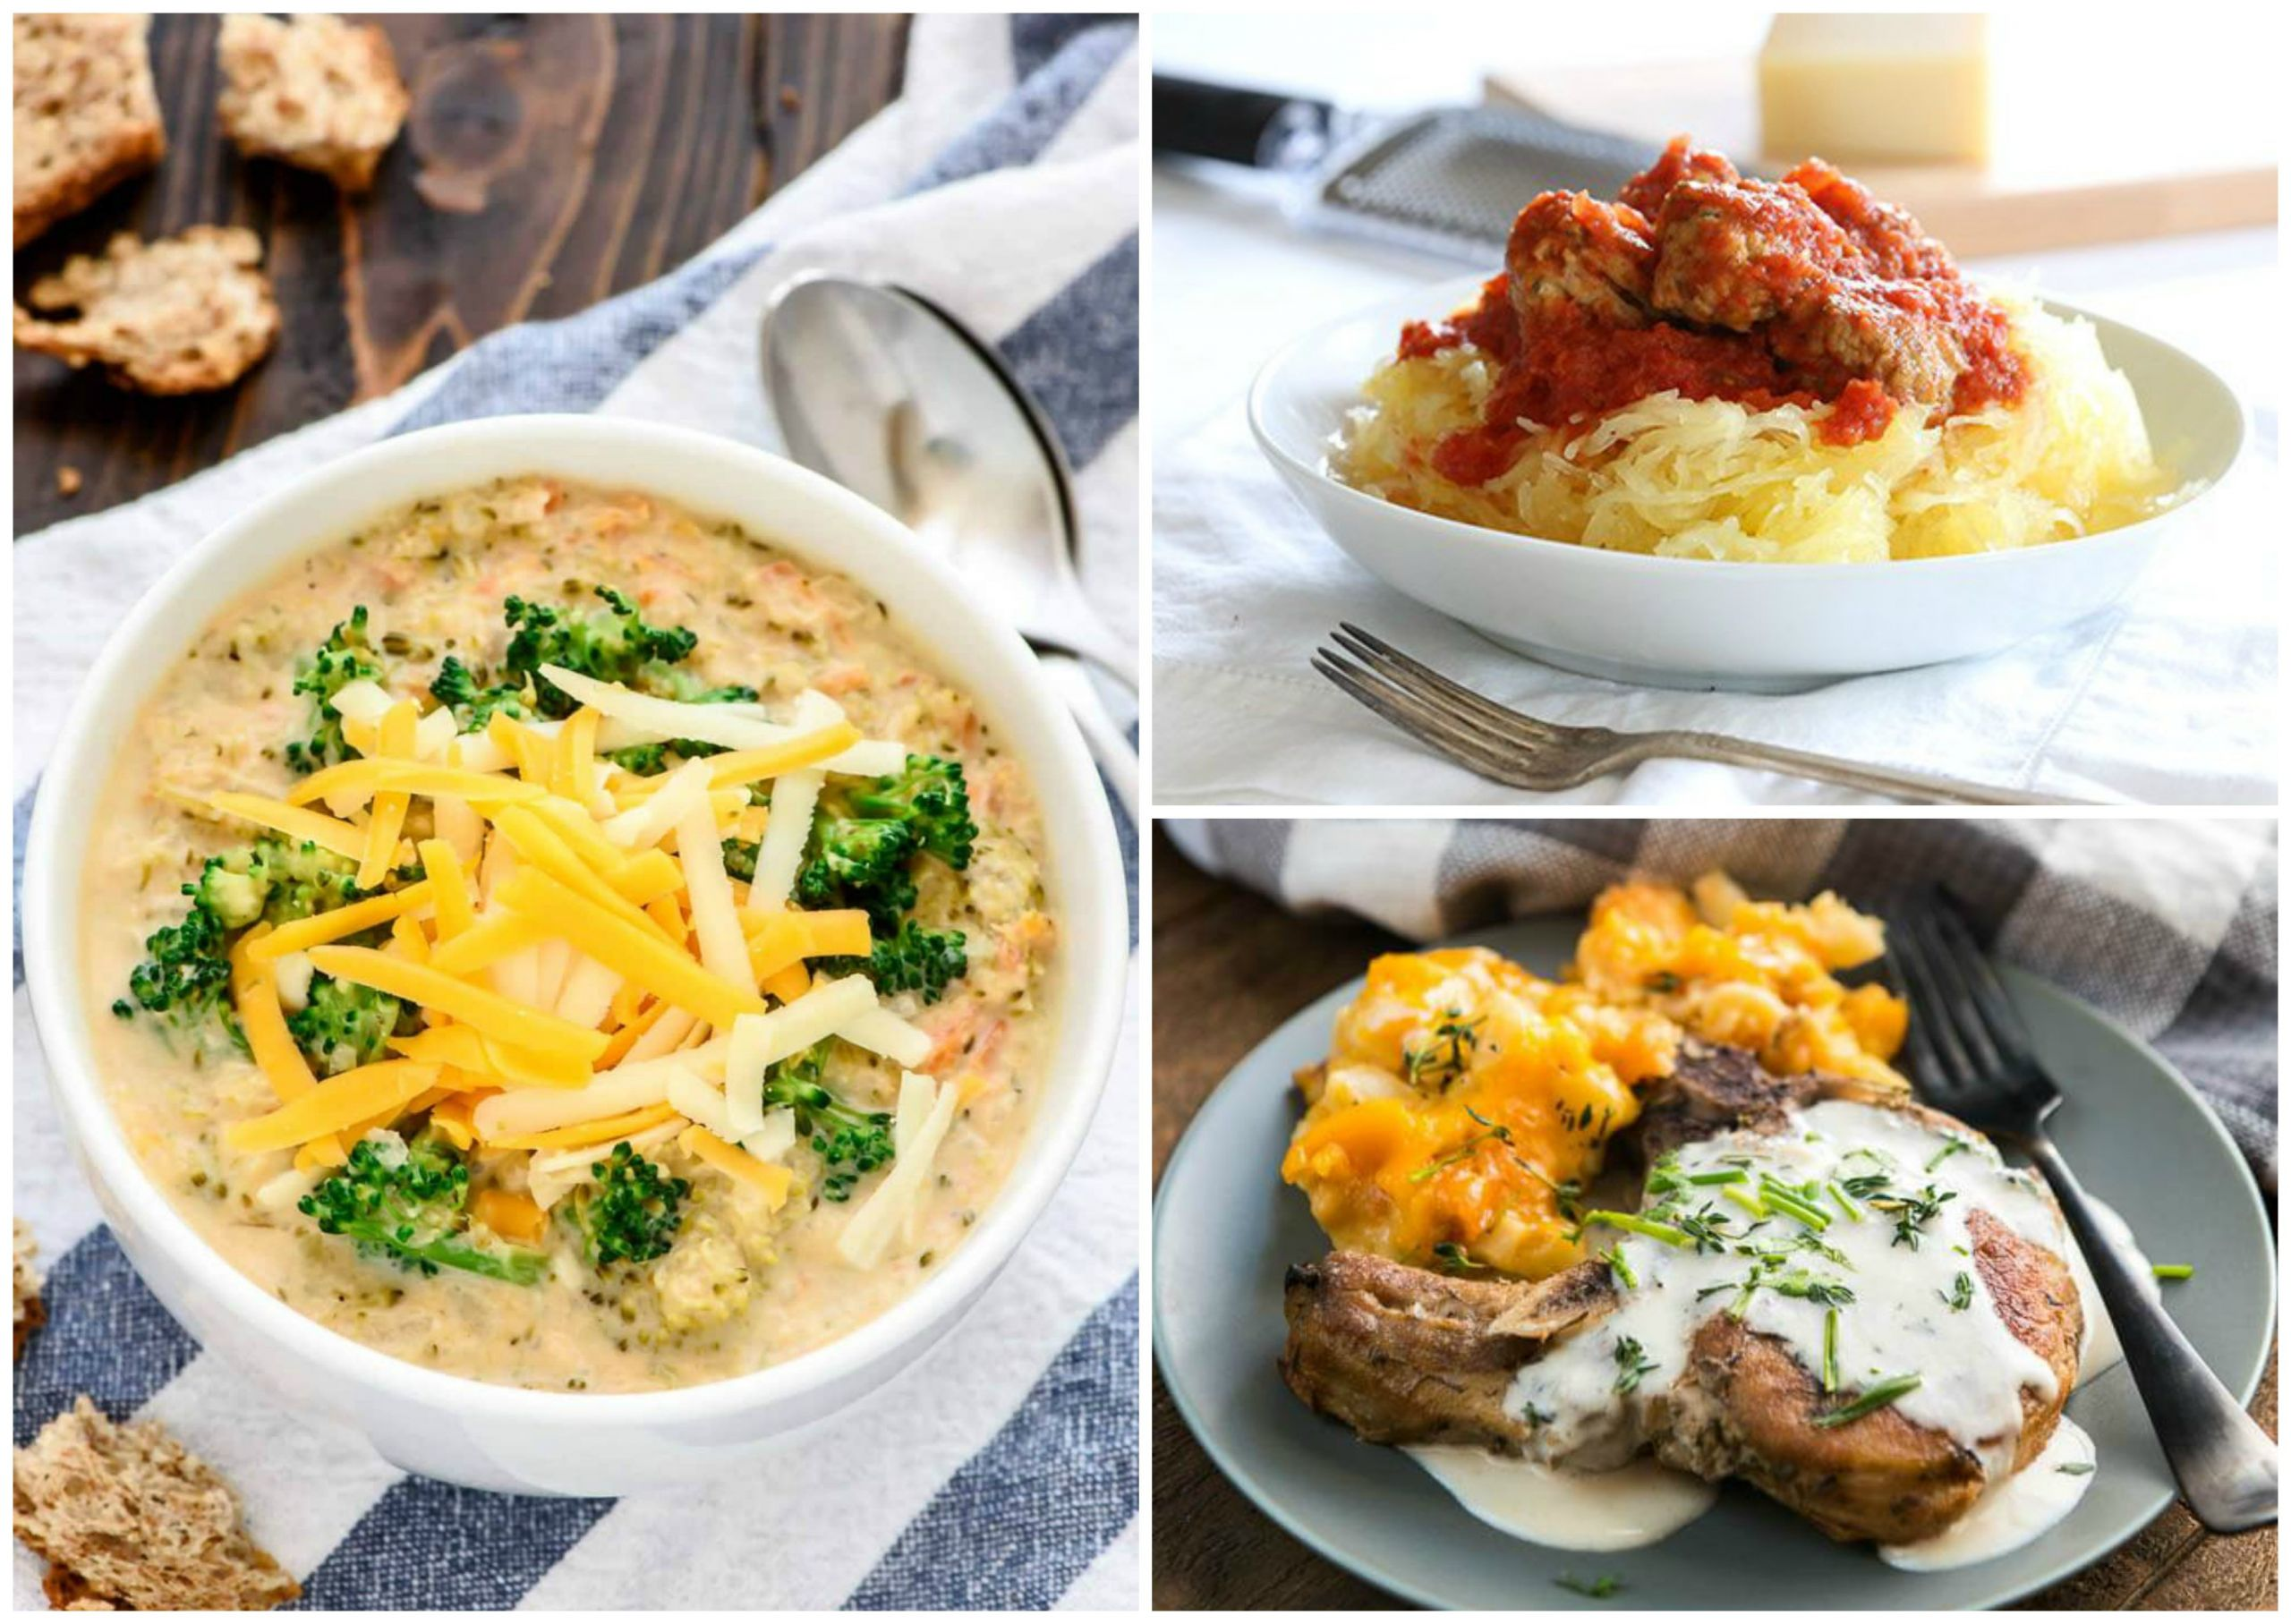 Slow Cooker Keto Recipes  10 Absolutely Delicious Slow Cooker Keto Recipes